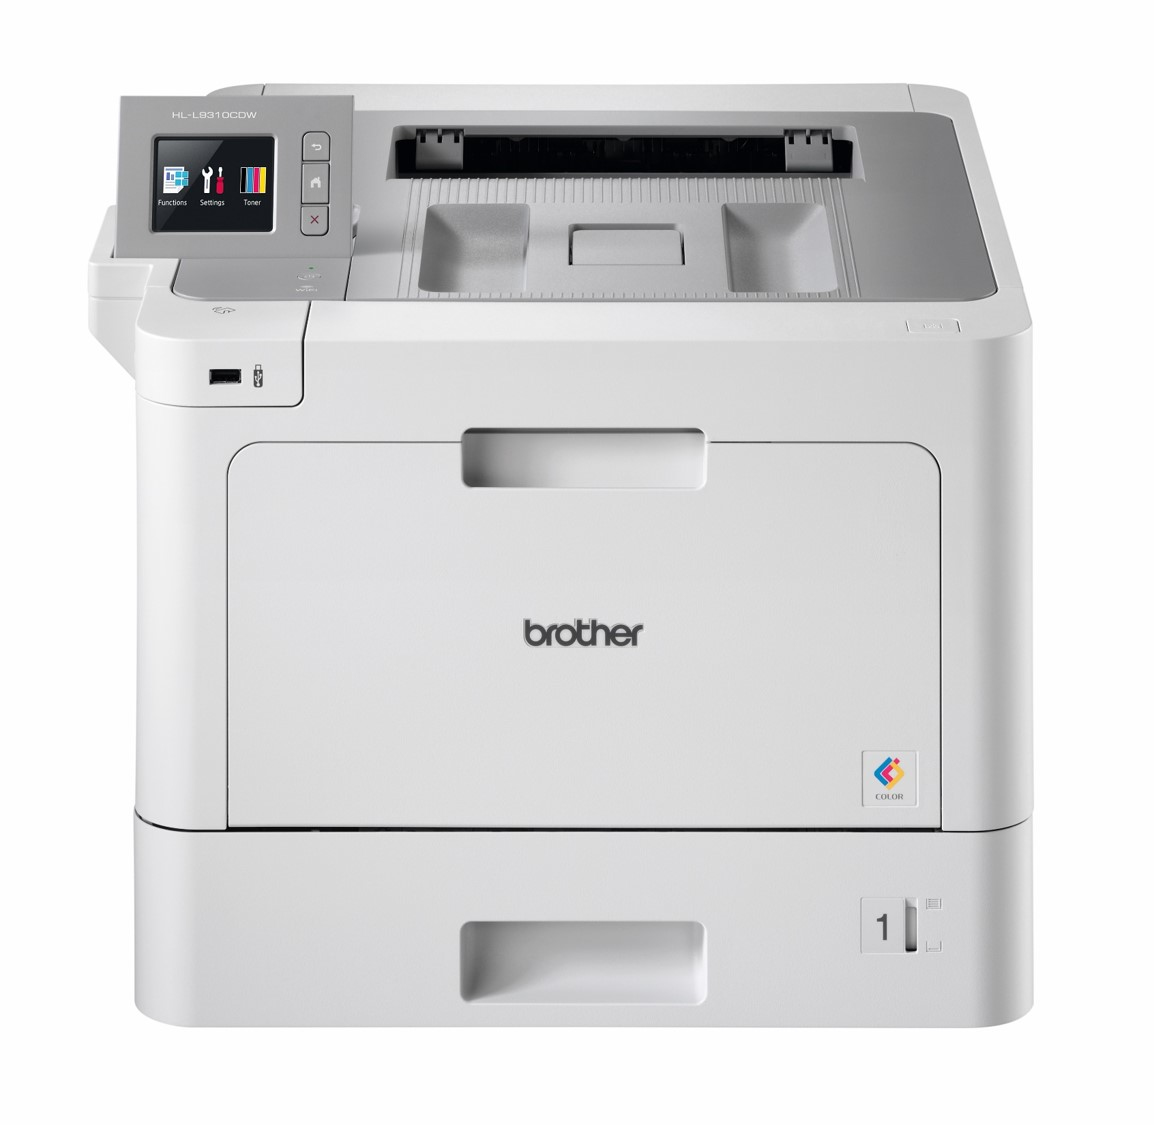 Brother HL-L9310CDW Colour Laser Printer Duplex Wifi